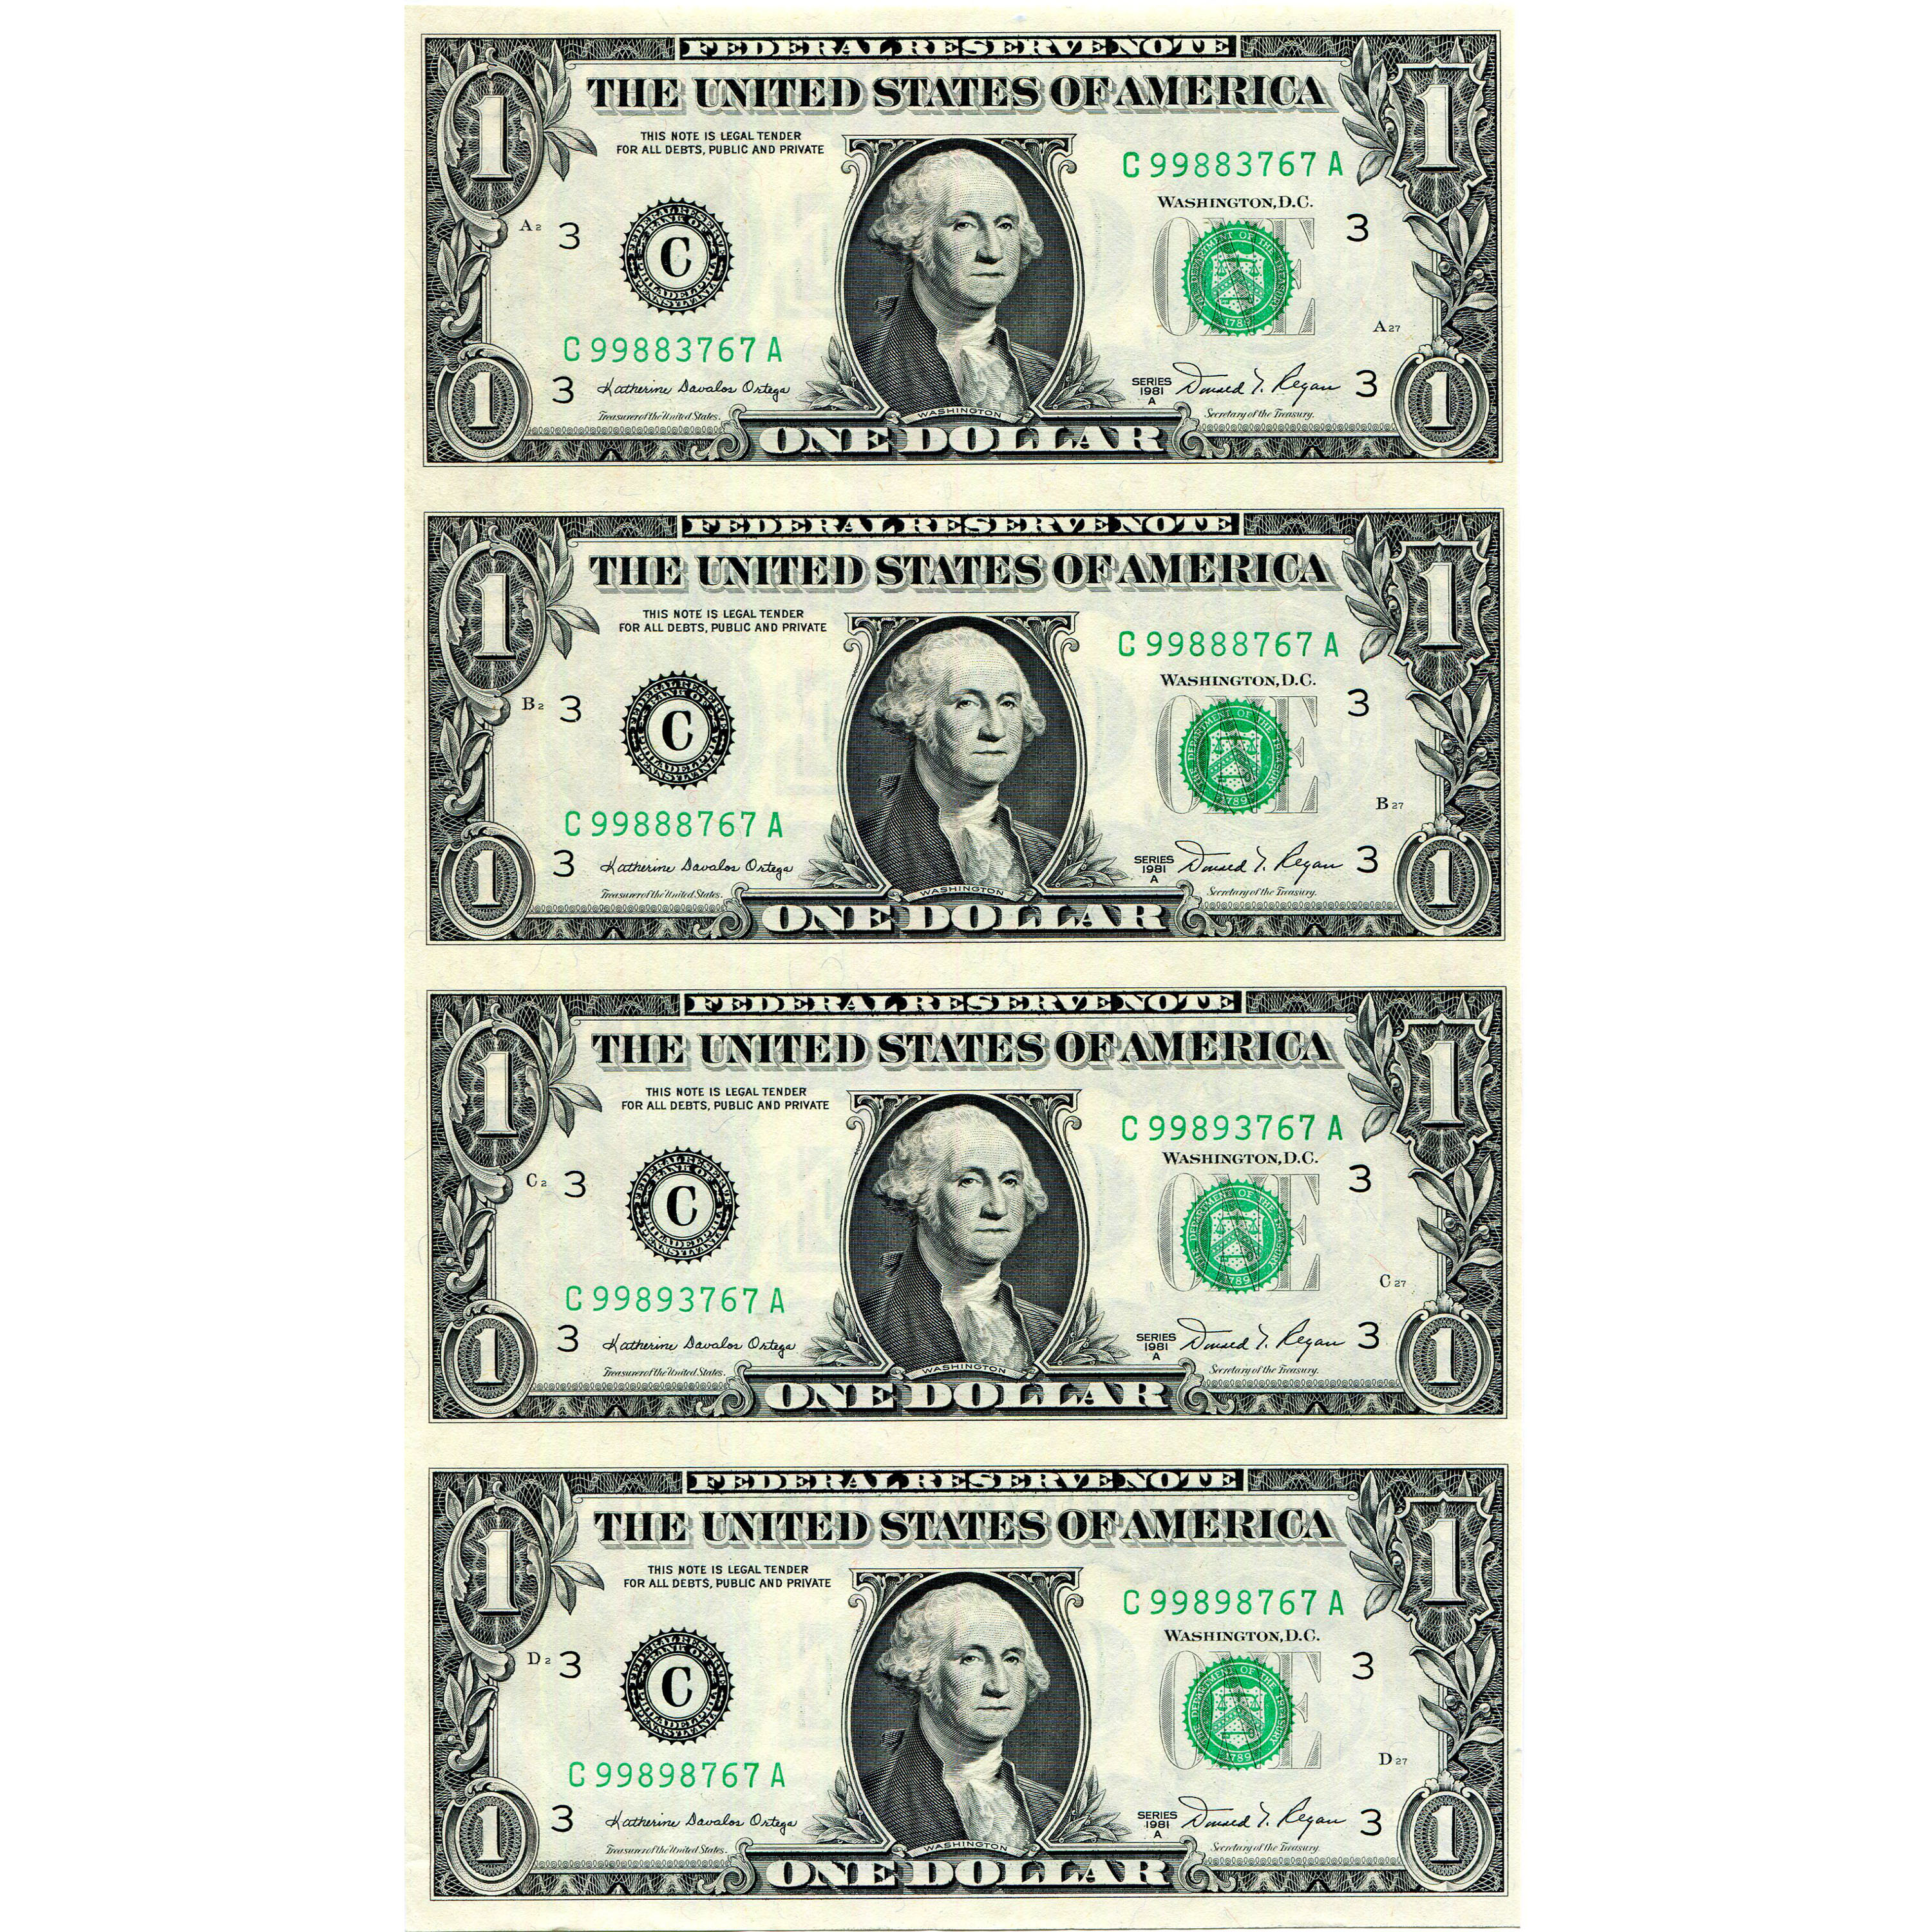 $1 Uncut Currency Sheets